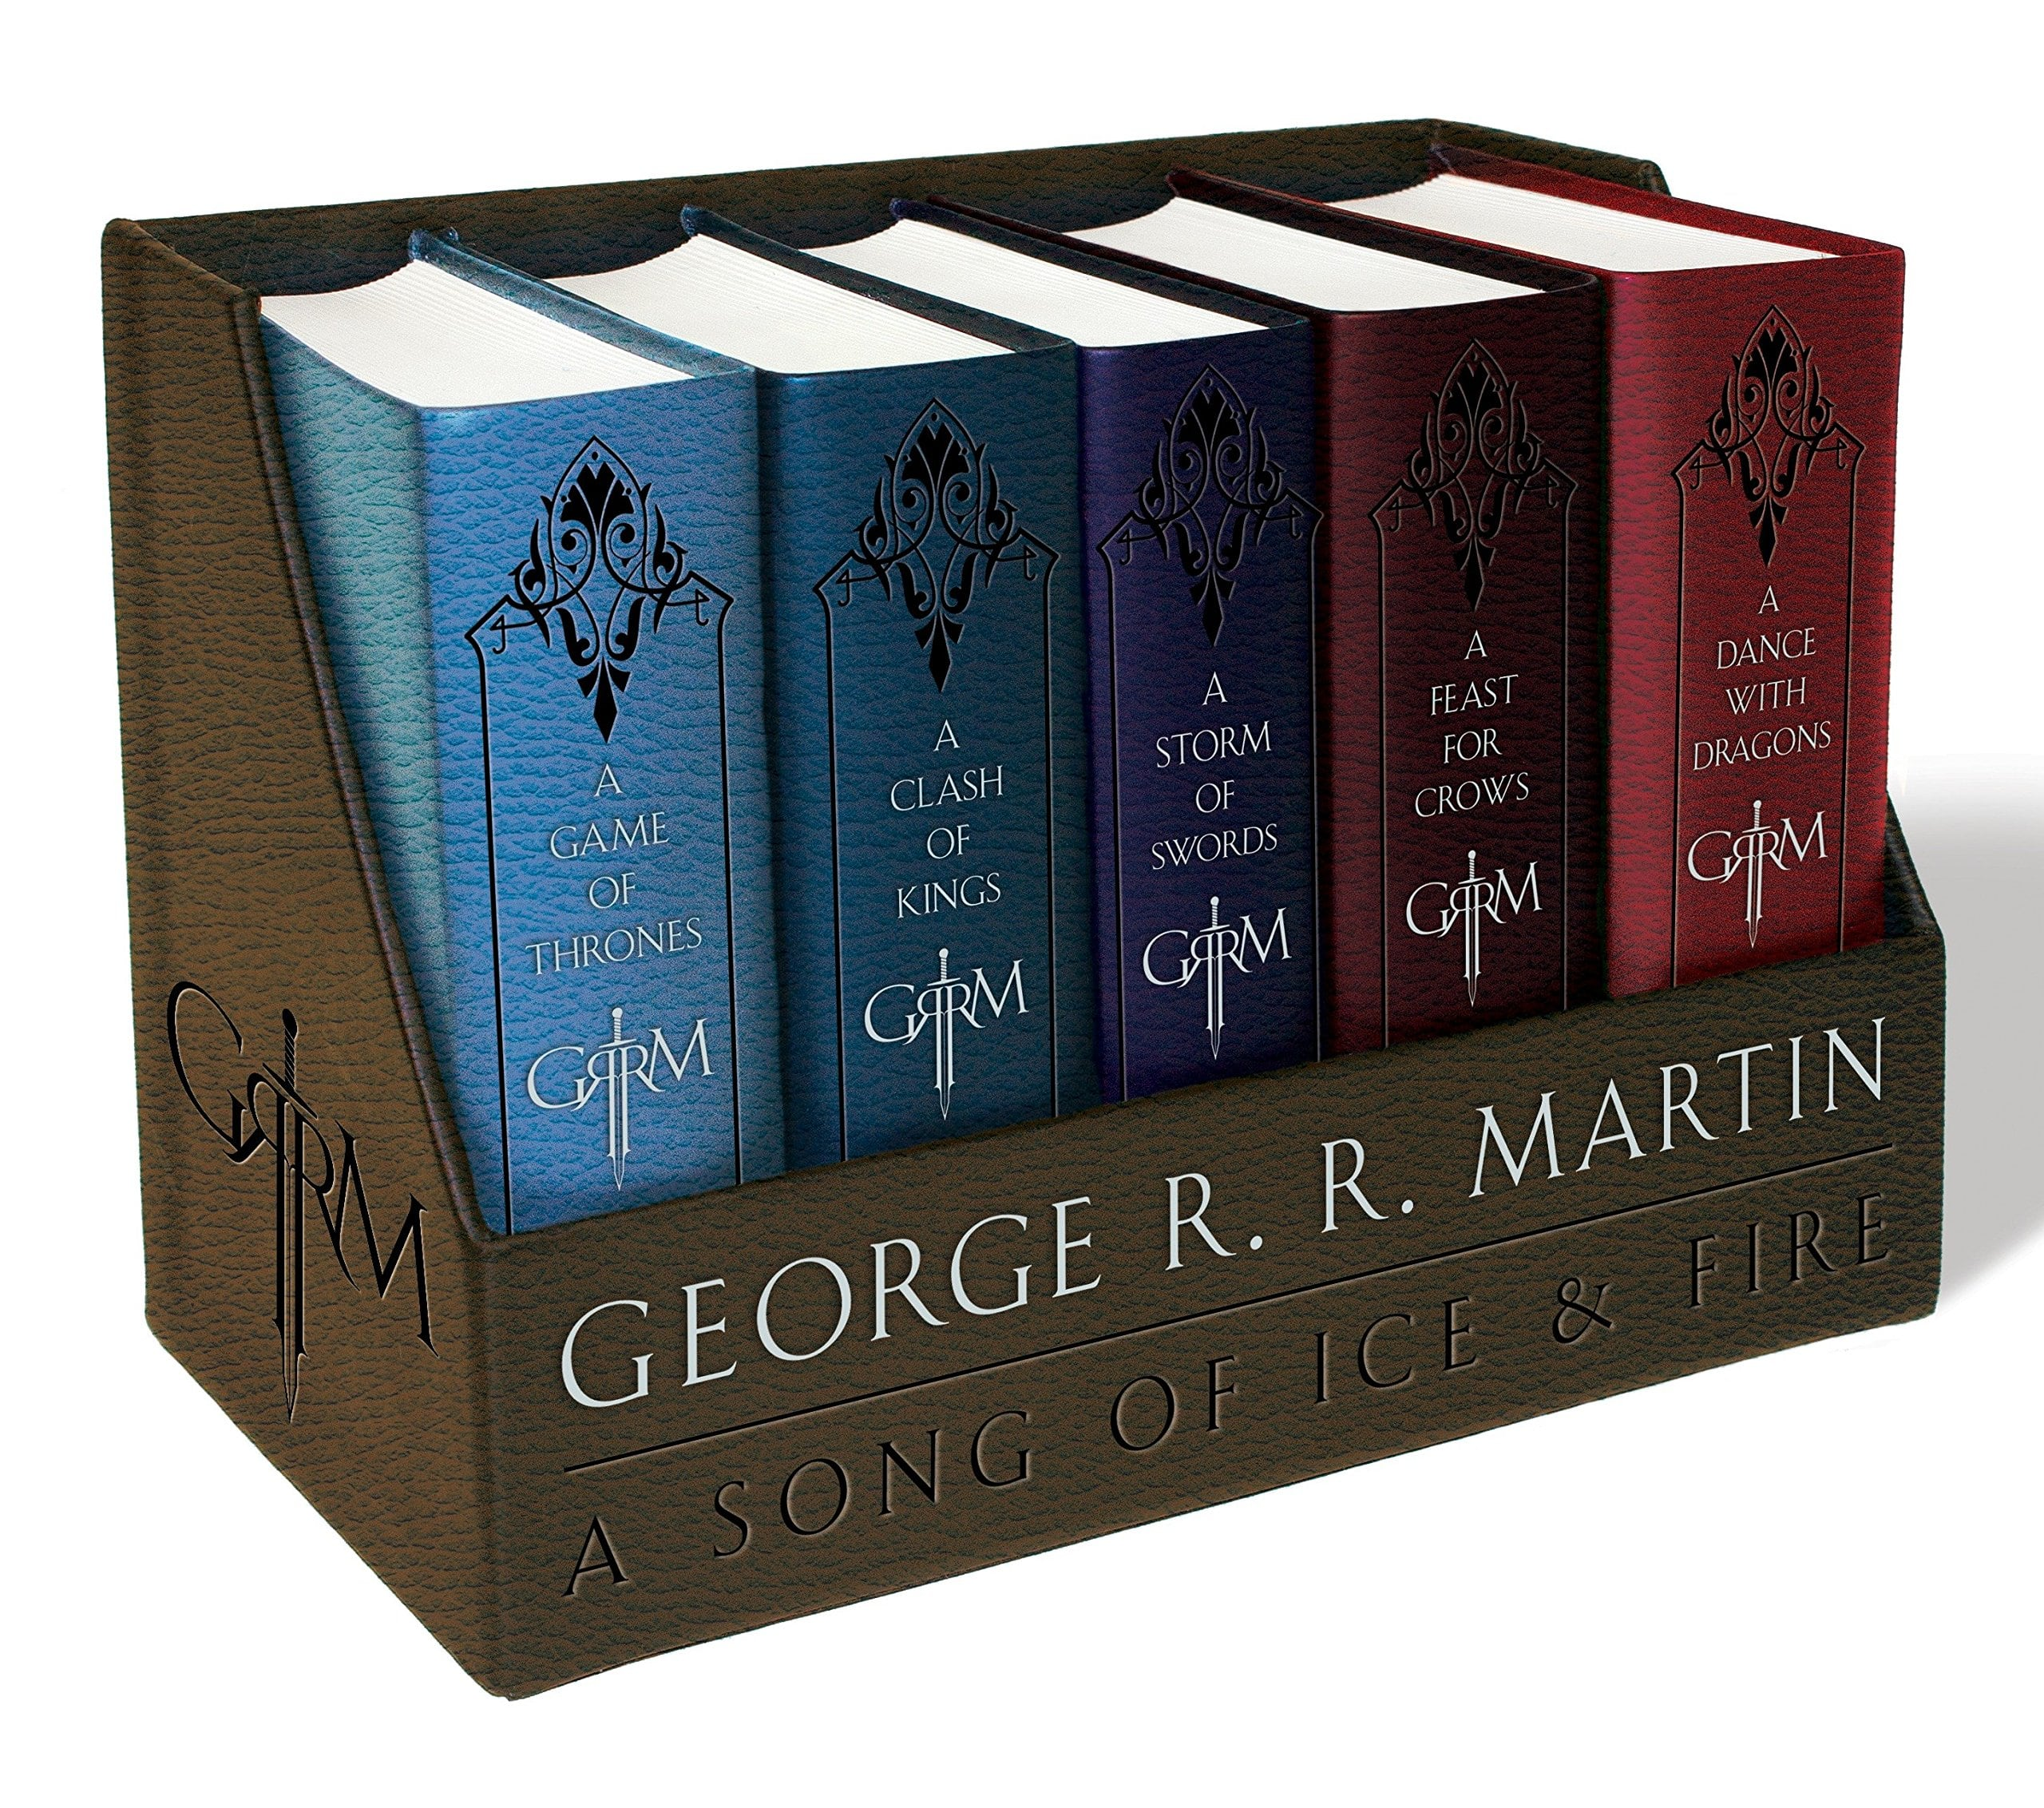 Game of Thrones (Song of Ice and Fire Series) : Leather Bound Books $39.48